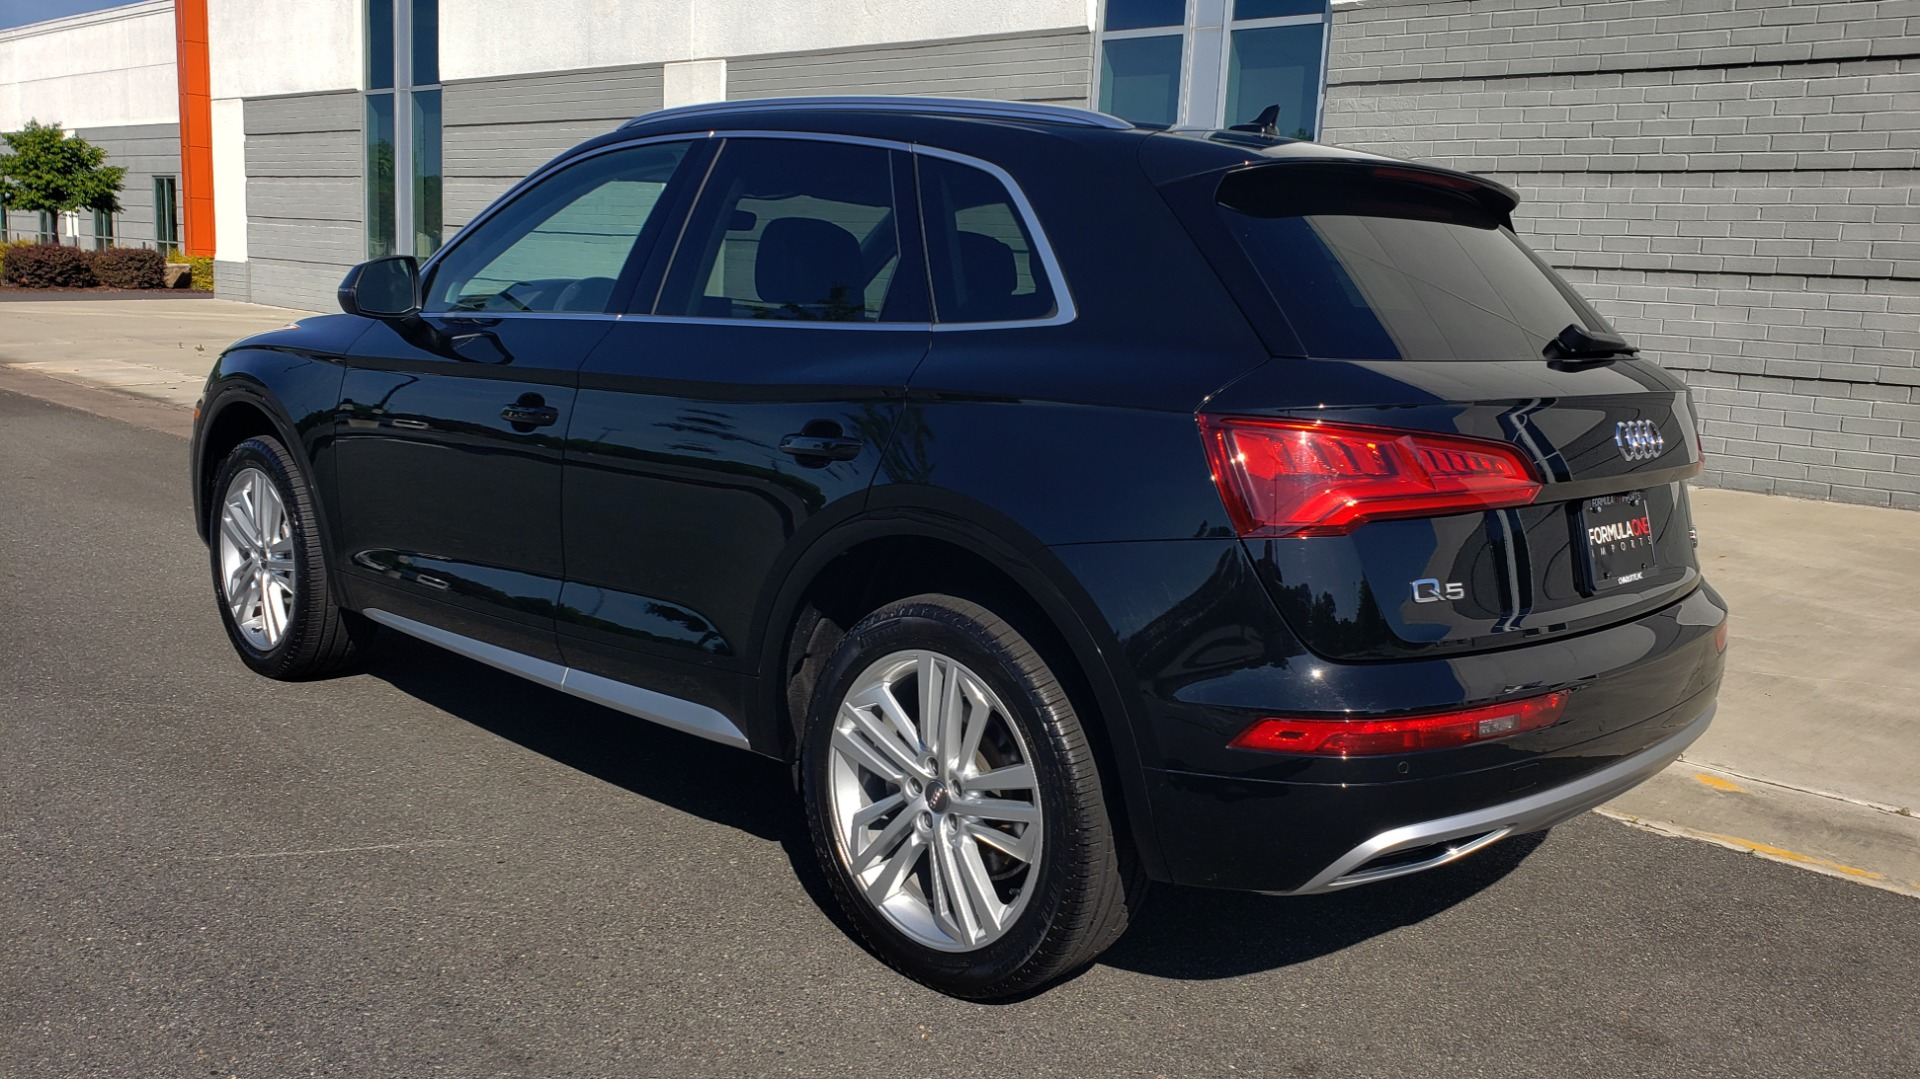 Used 2018 Audi Q5 PREMIUM PLUS / NAV / B&O SND / CLD WTHR / SUNROOF / REARVIEW for sale Sold at Formula Imports in Charlotte NC 28227 7